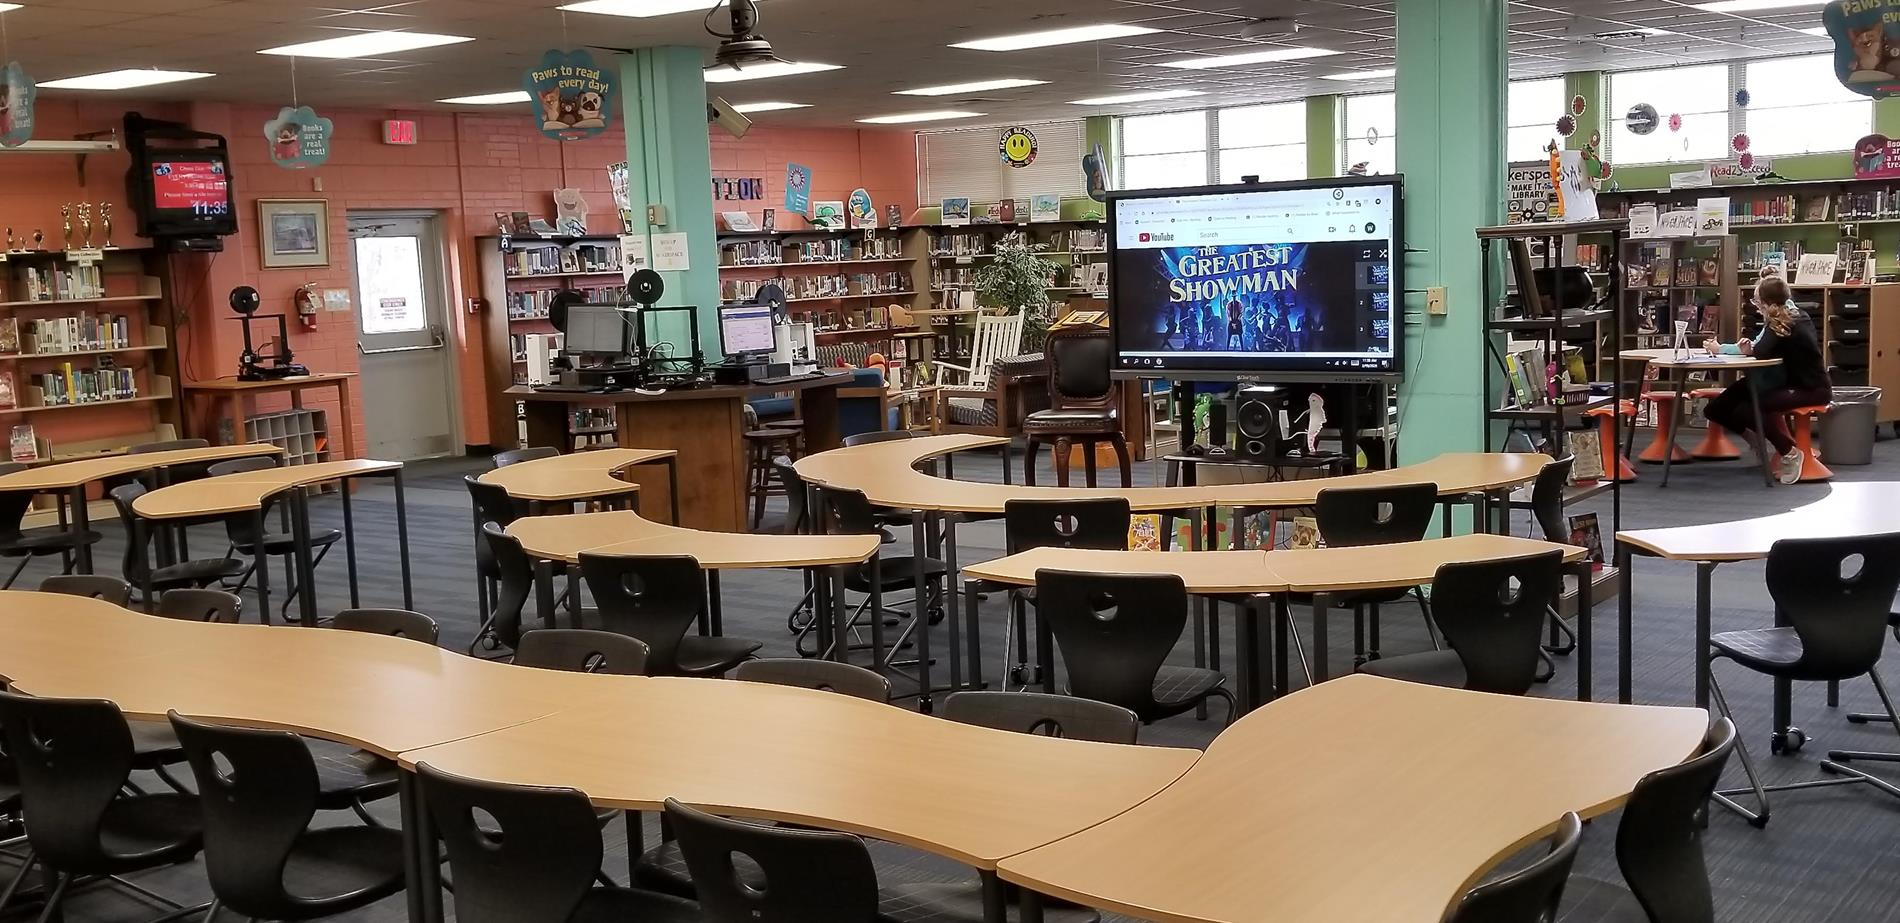 Picture of the classroom area of BCS Media Center